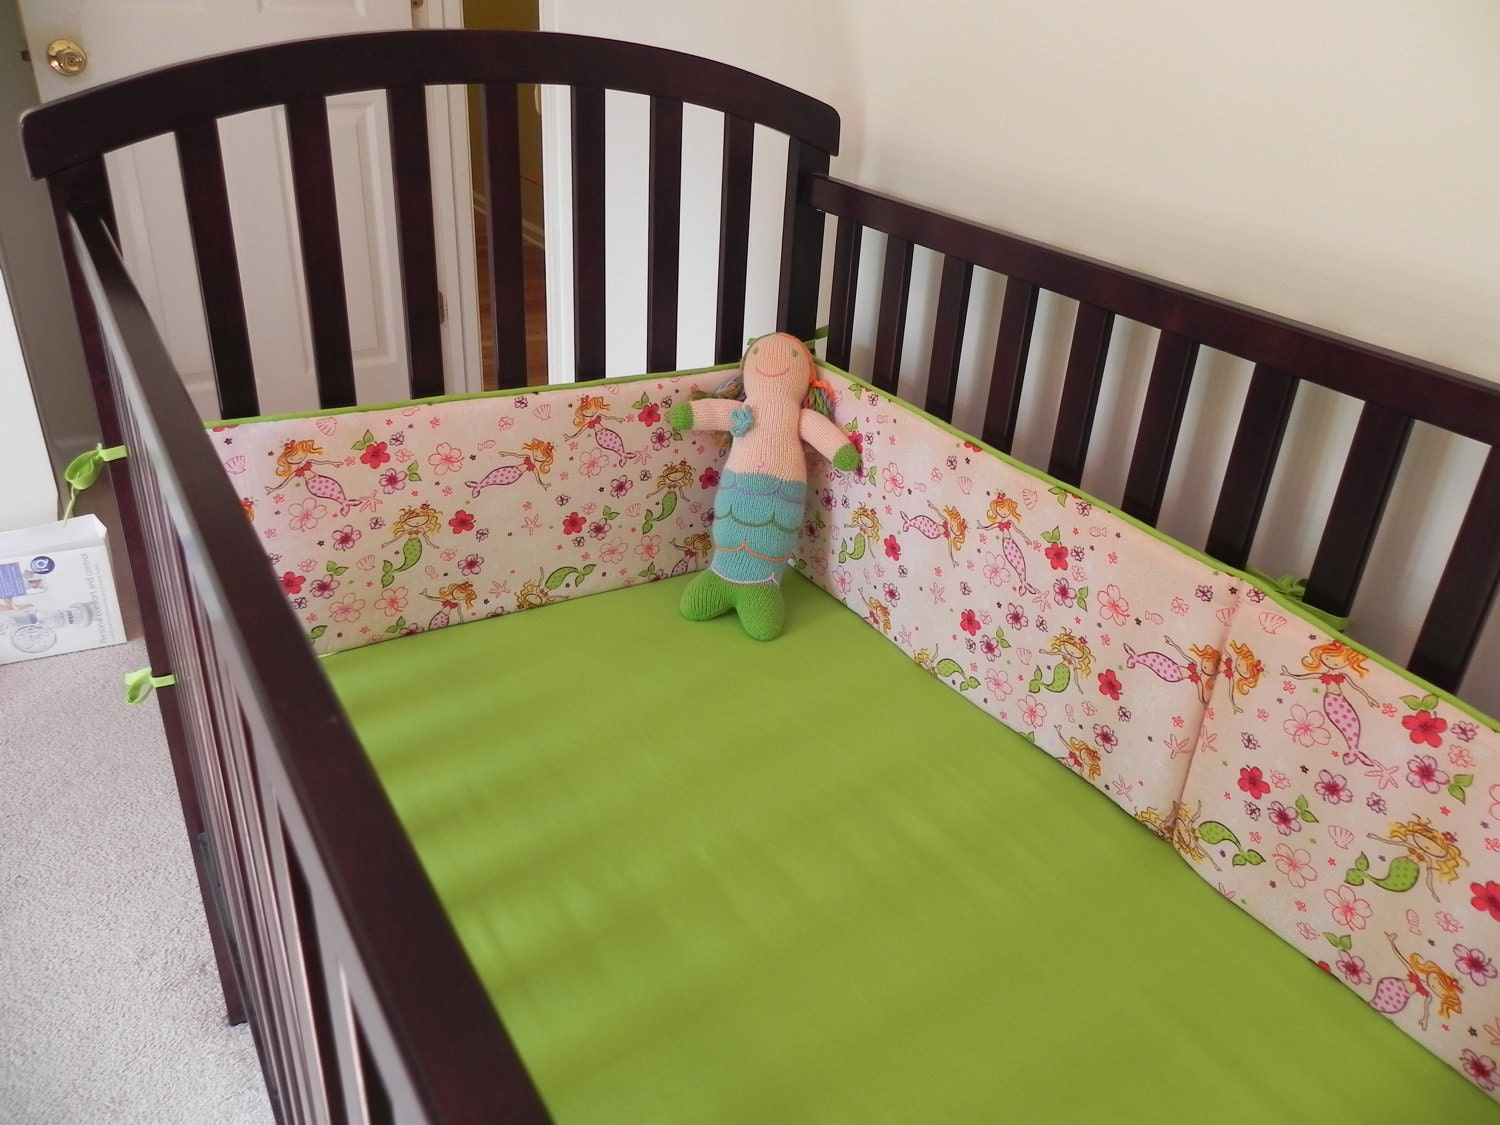 Mermaid Themed 6-Piece Crib Bedding Set With Quilt